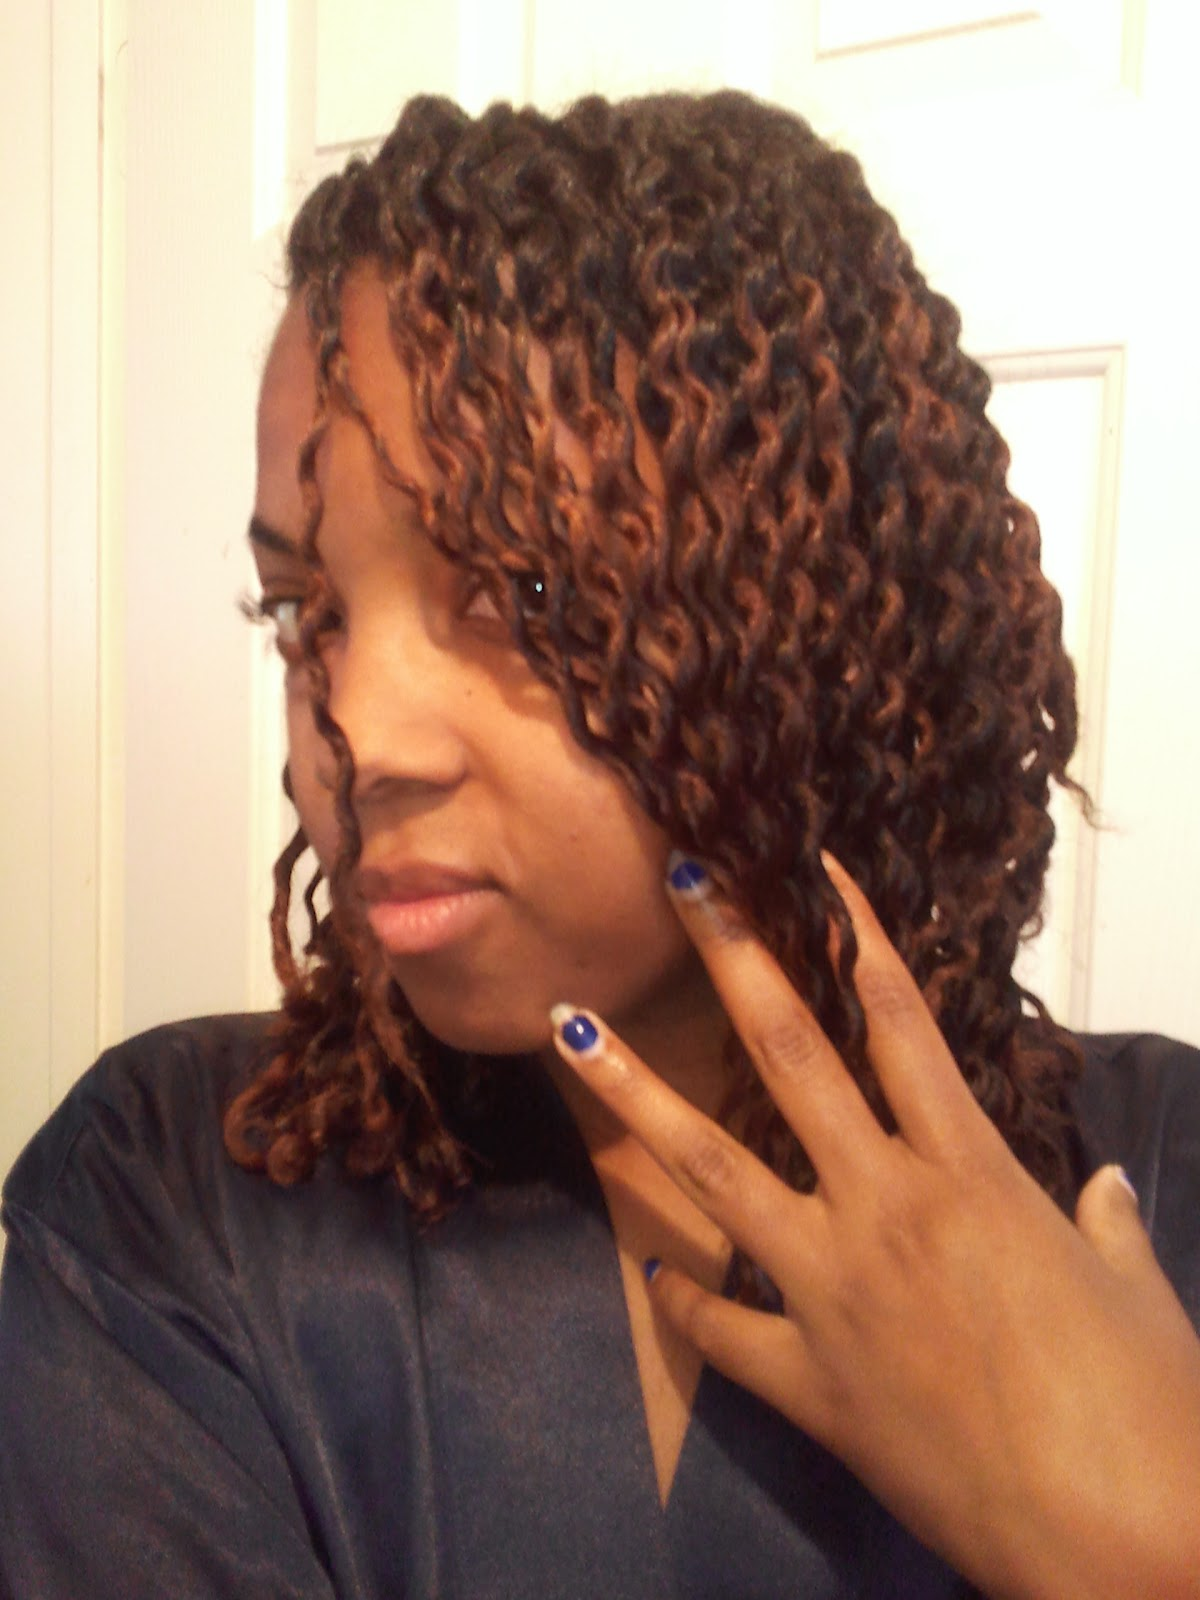 HEALTHY HAPPY HAIR: I Chose to Color My Natural Hair